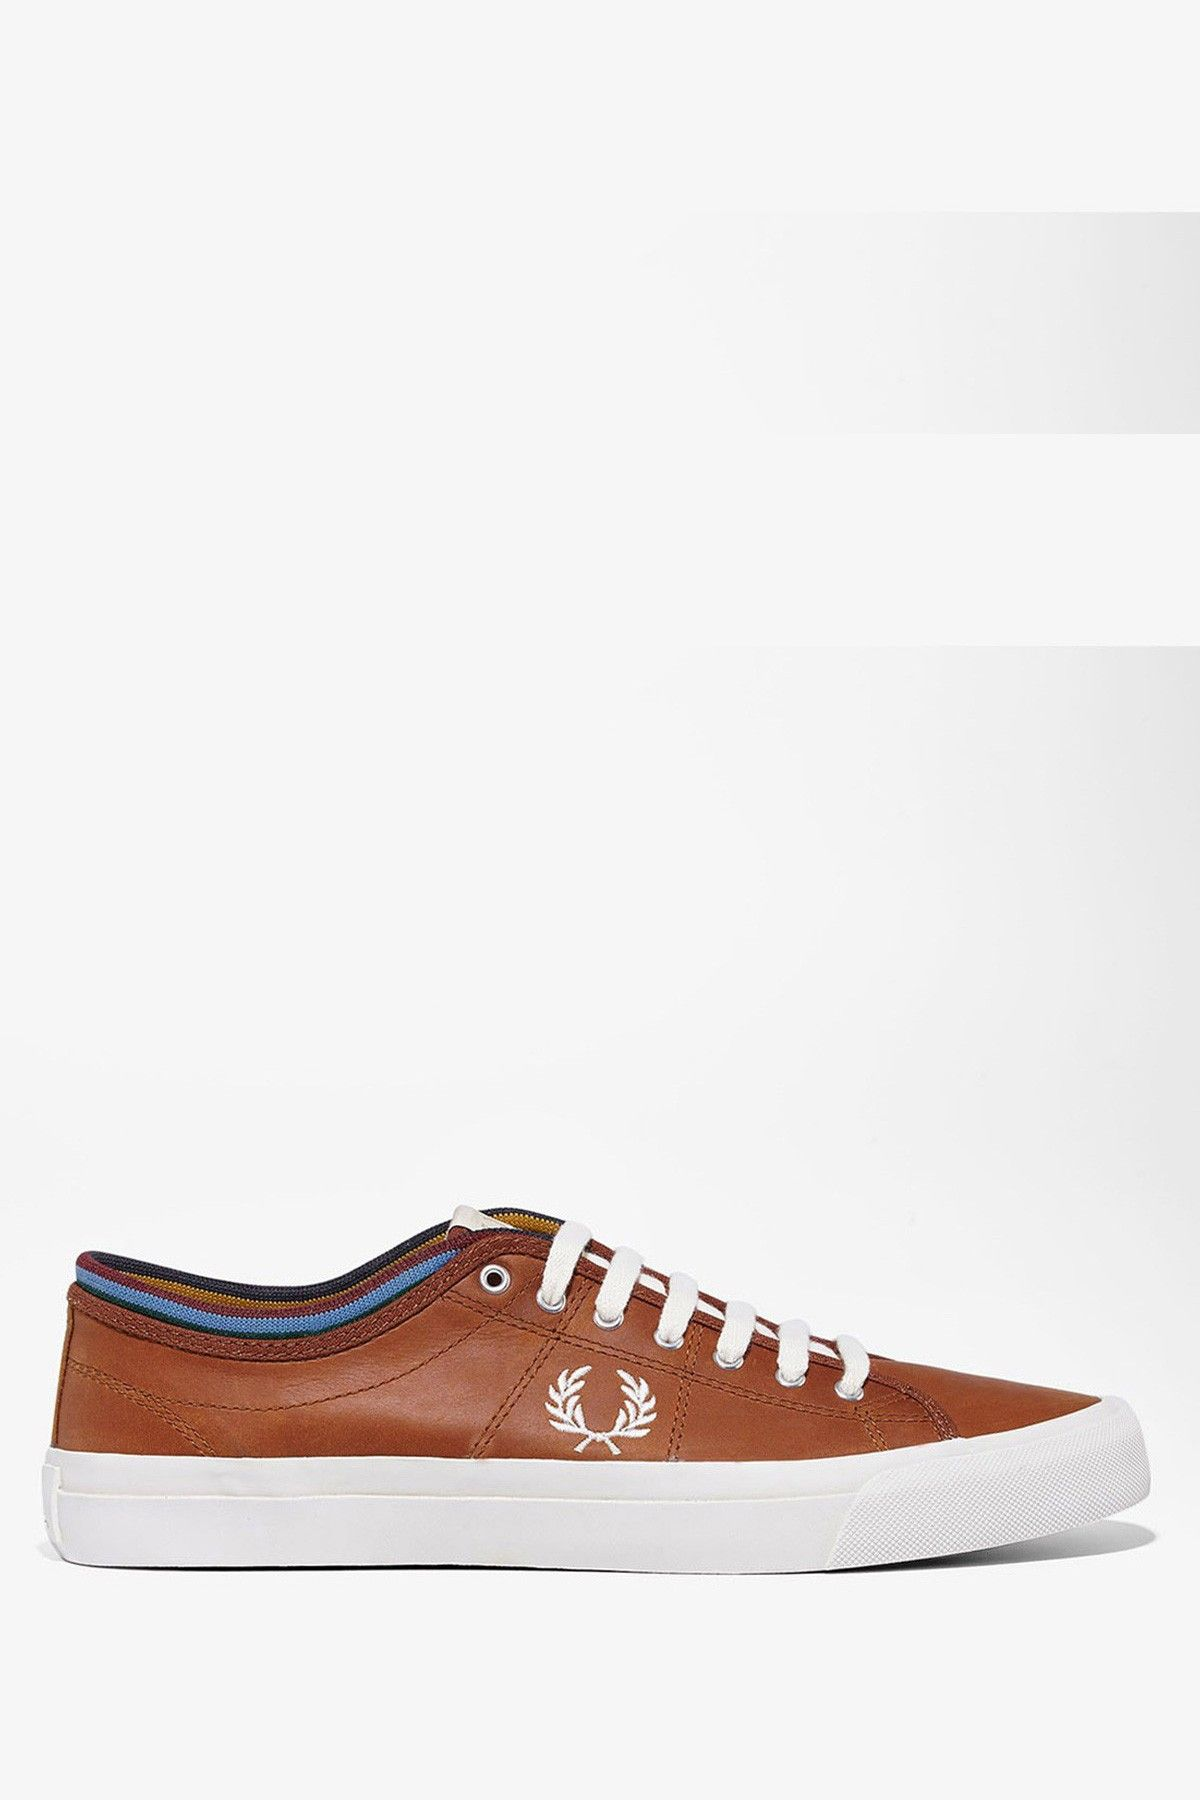 Fred Perry Kendrick Tipped Cuff Leather Bradley Wiggins Man Sneaker ... bb1274c42c